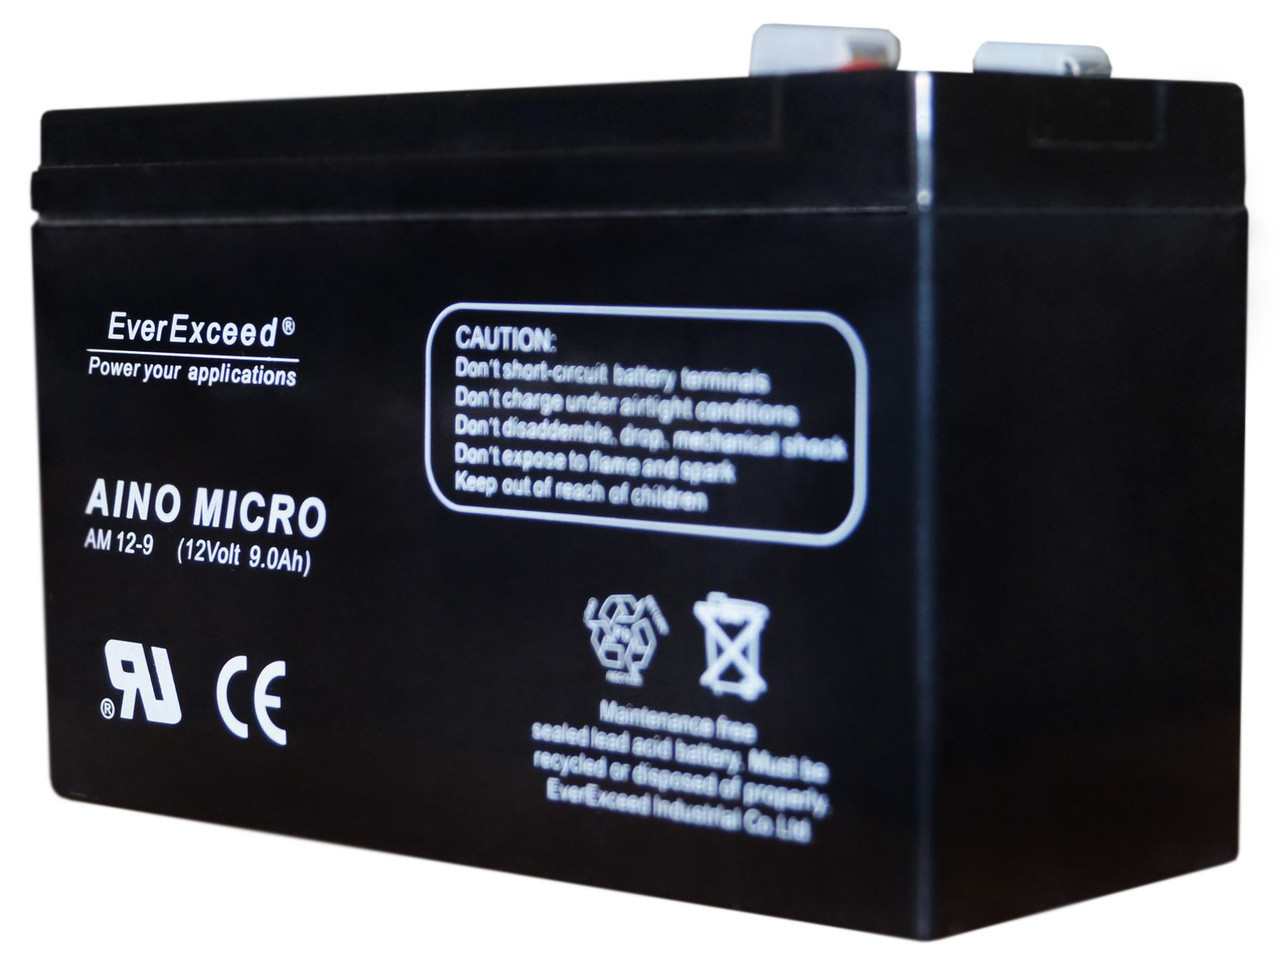 Аккумулятор EverExceed Aino Micro AM 12-9.(12V-9Ah)